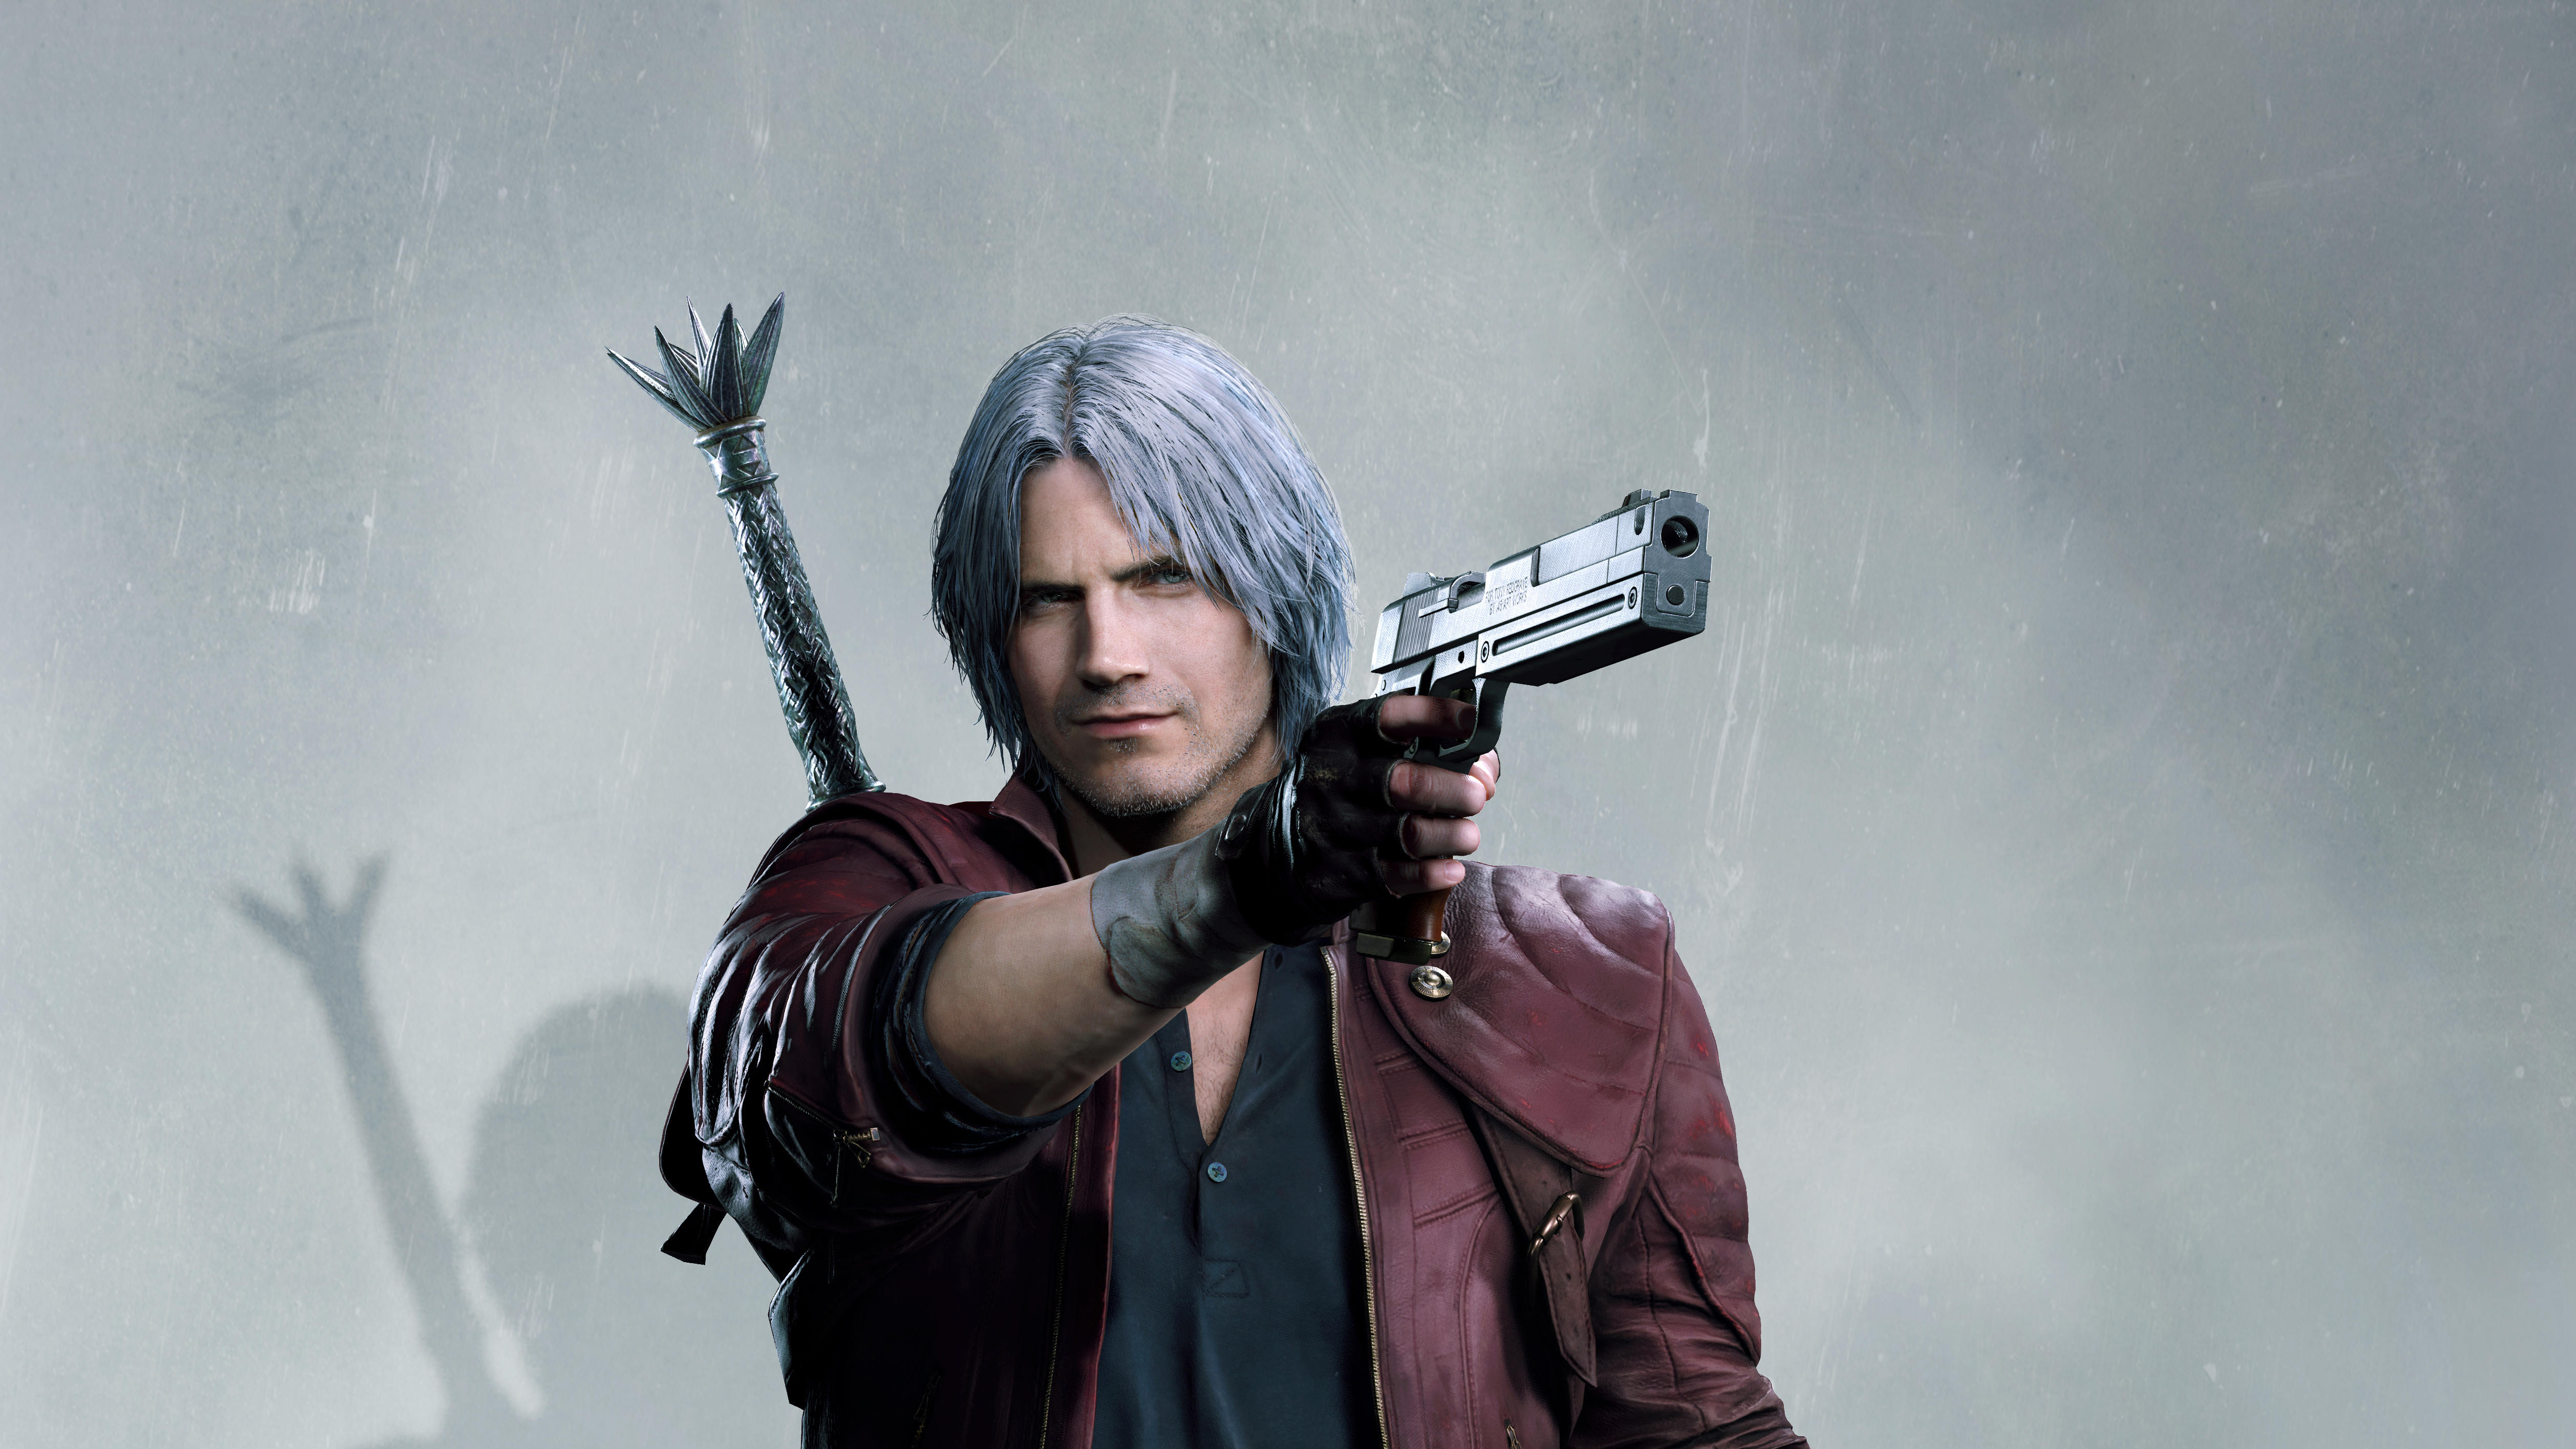 Dante Devil May Cry 5 Hd Games 4k Wallpapers Images